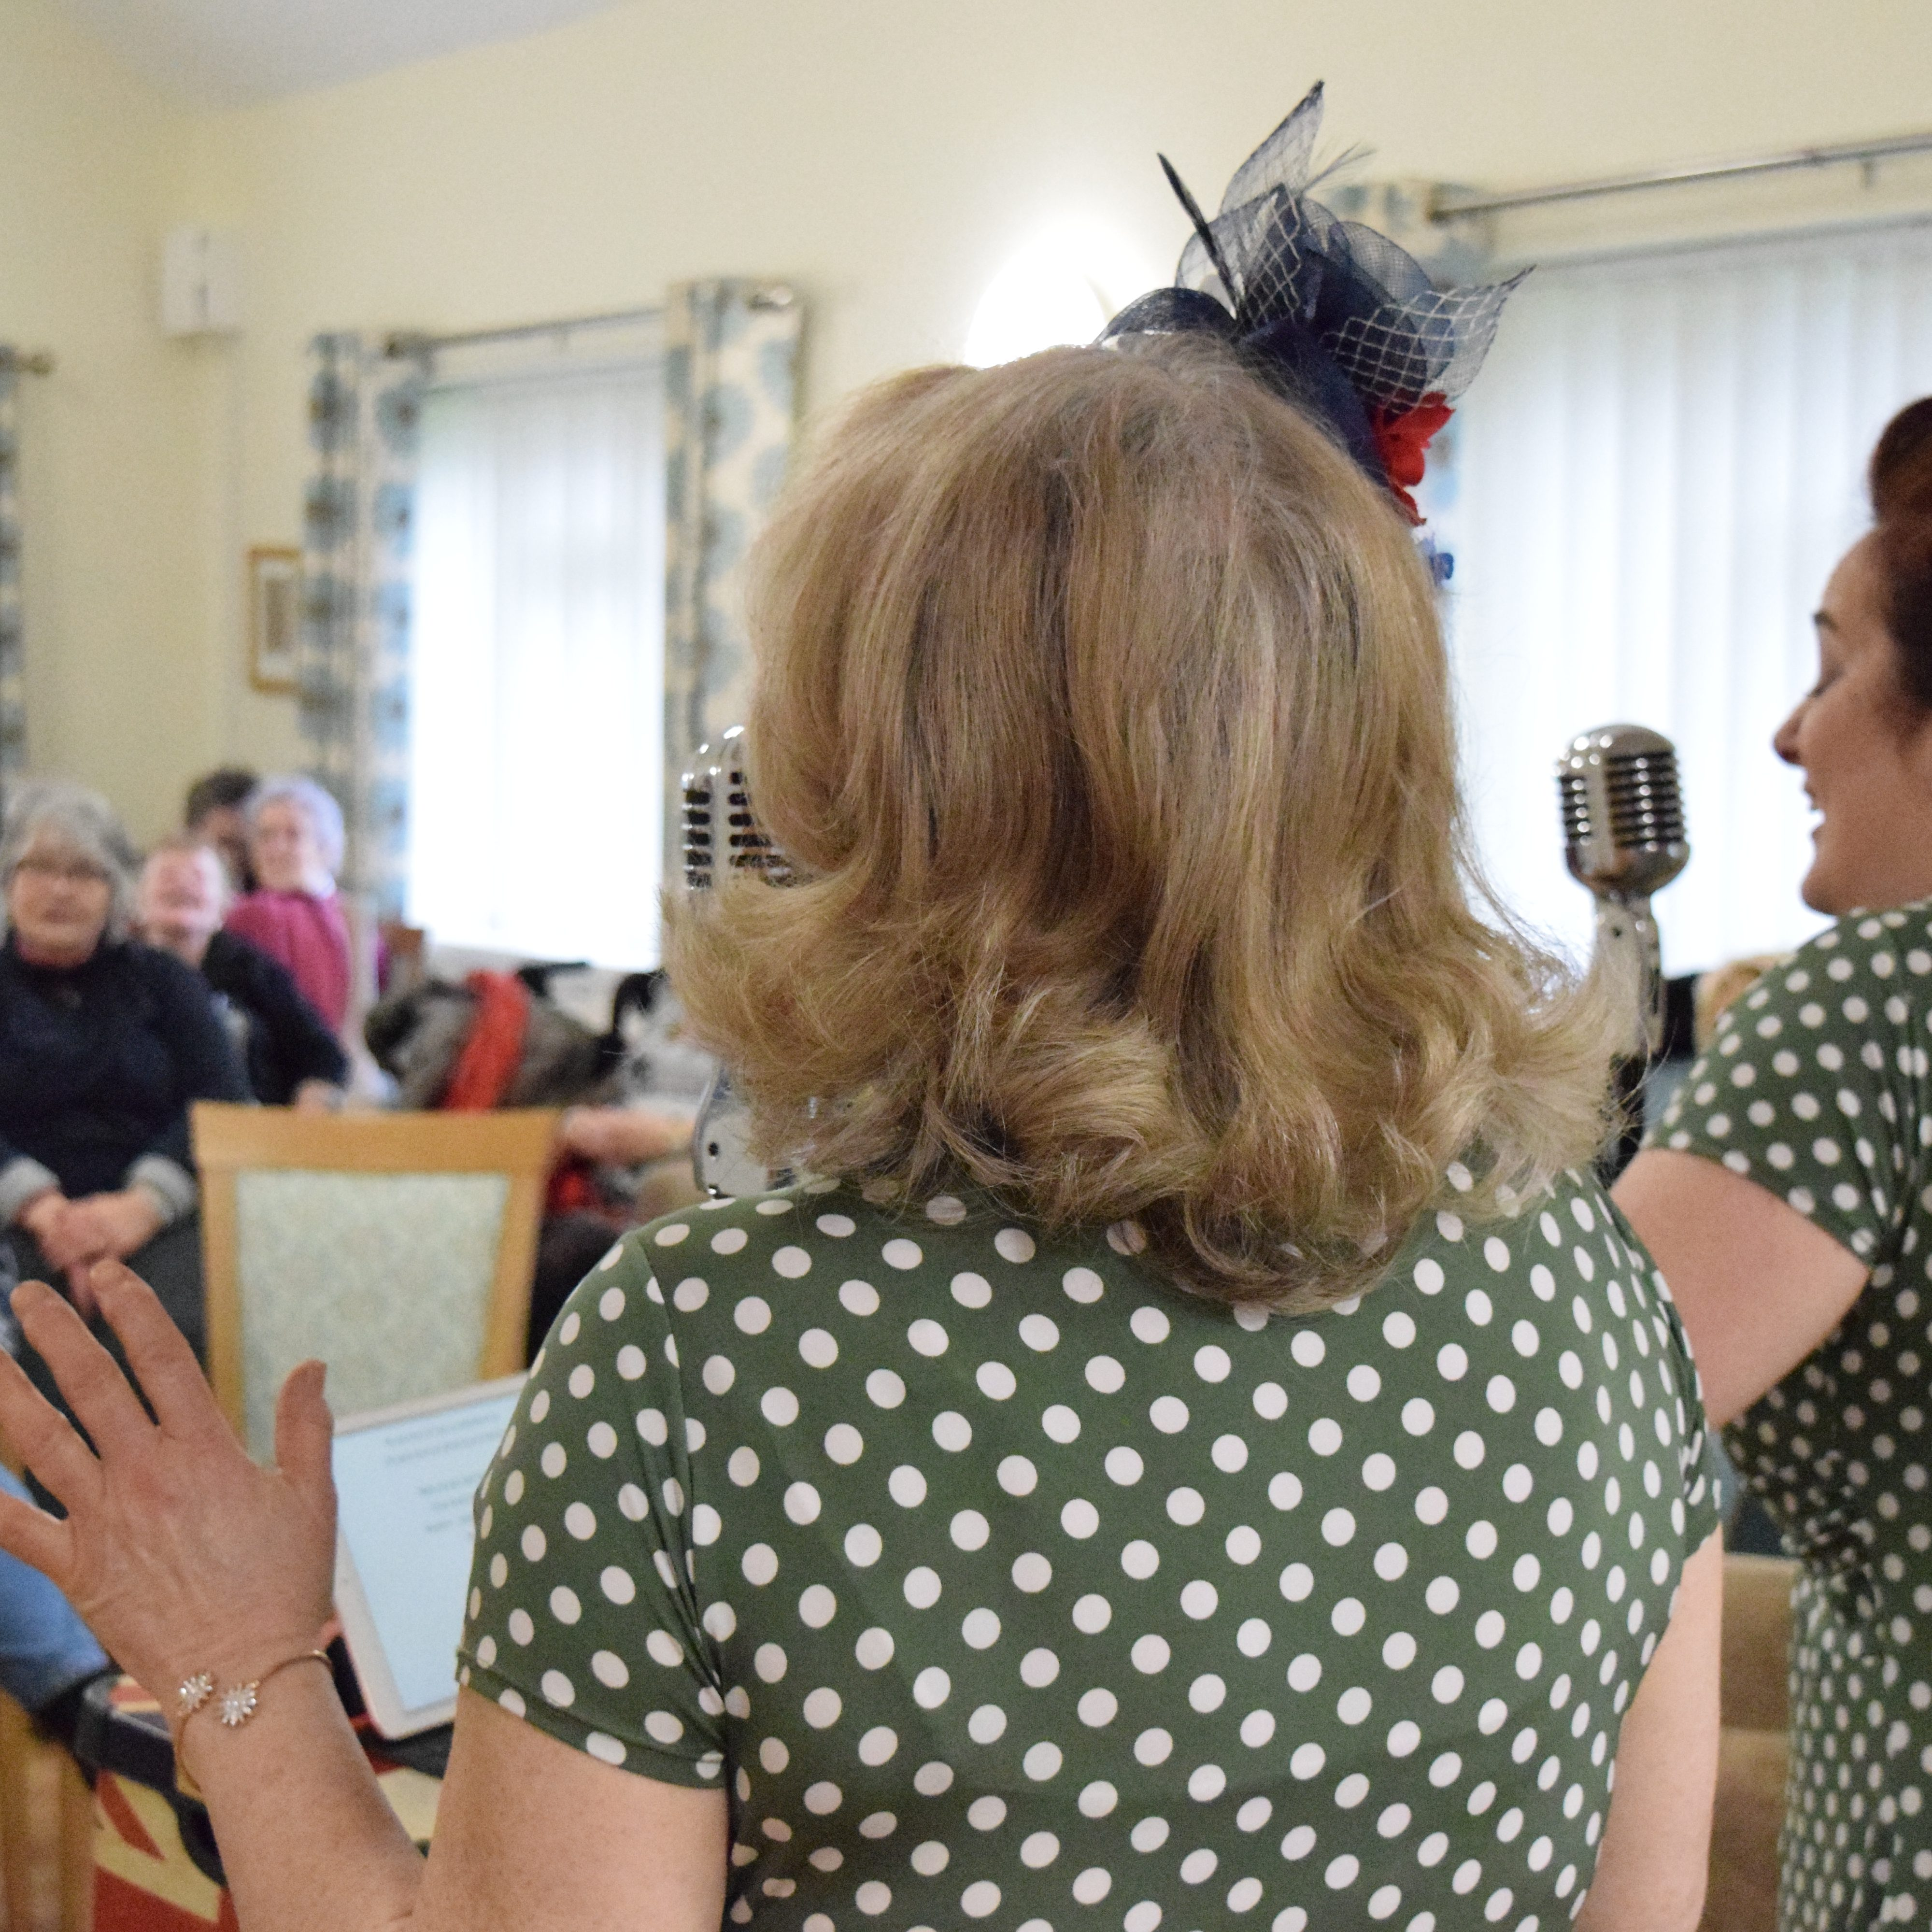 The Poppy Sisters at Lynworth Court aperture style photo